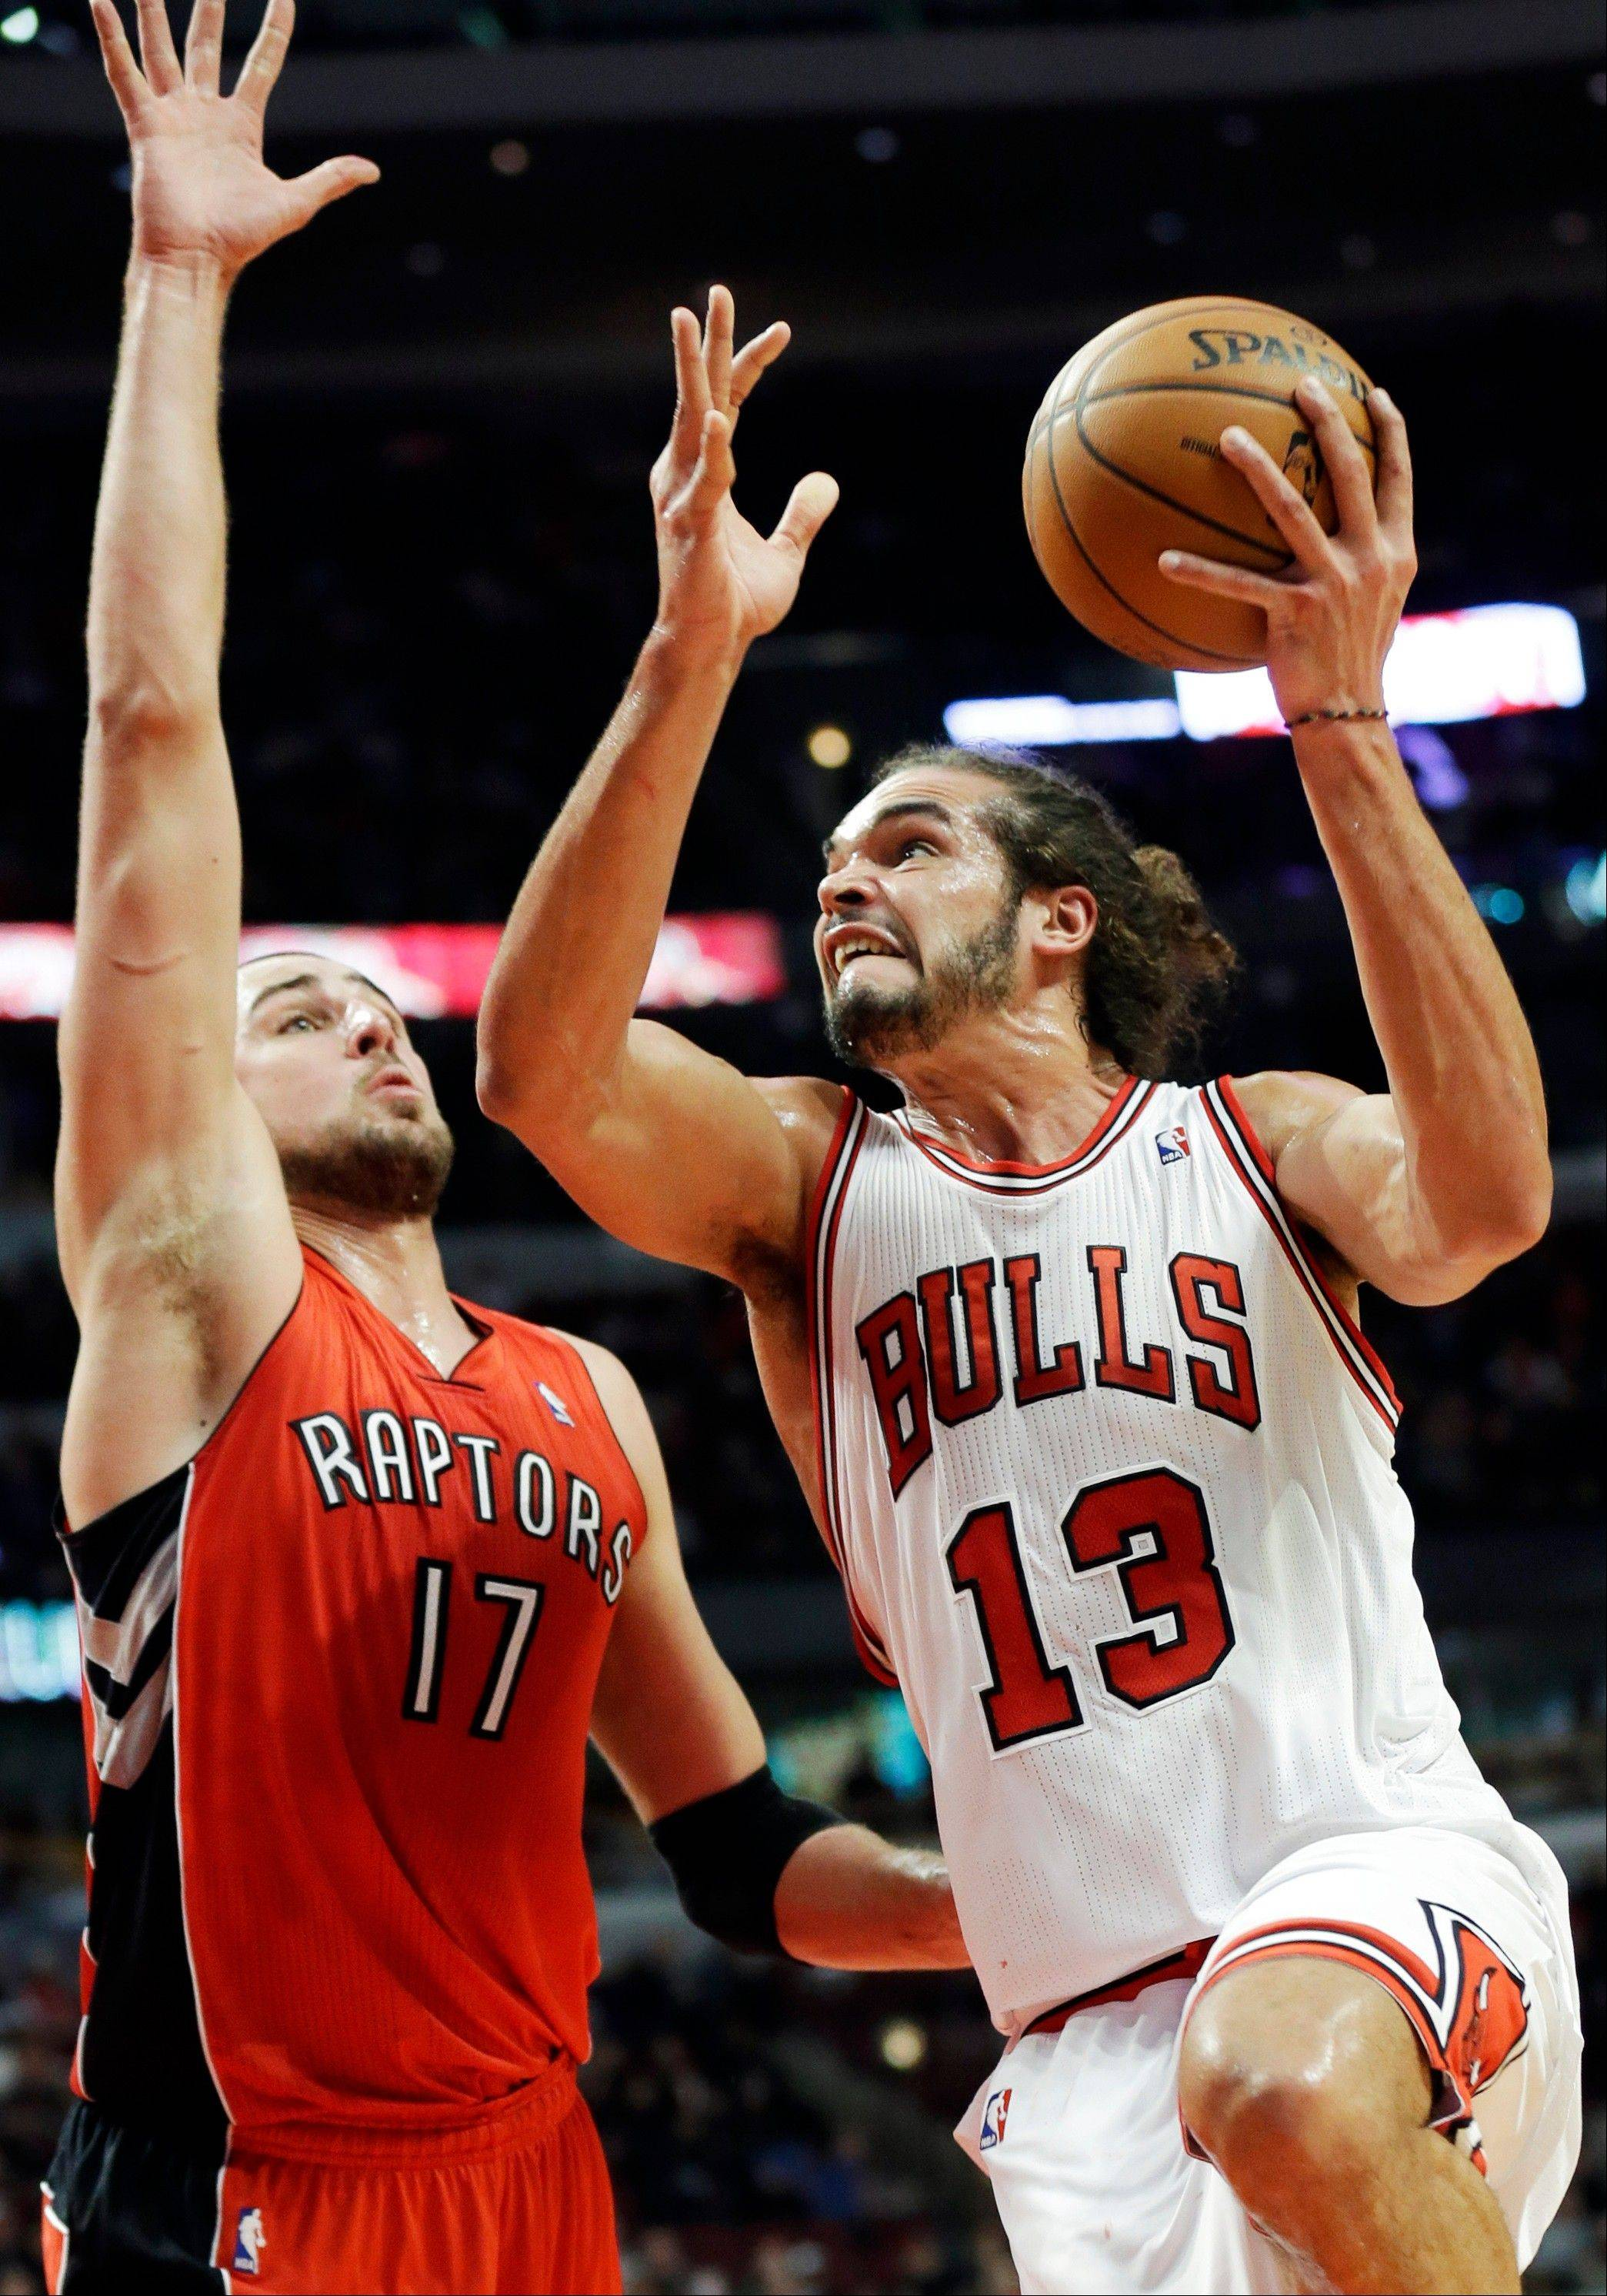 Joakim Noah and the struggling Bulls hope to get some momentum going when they host the Magic today at the United Center.